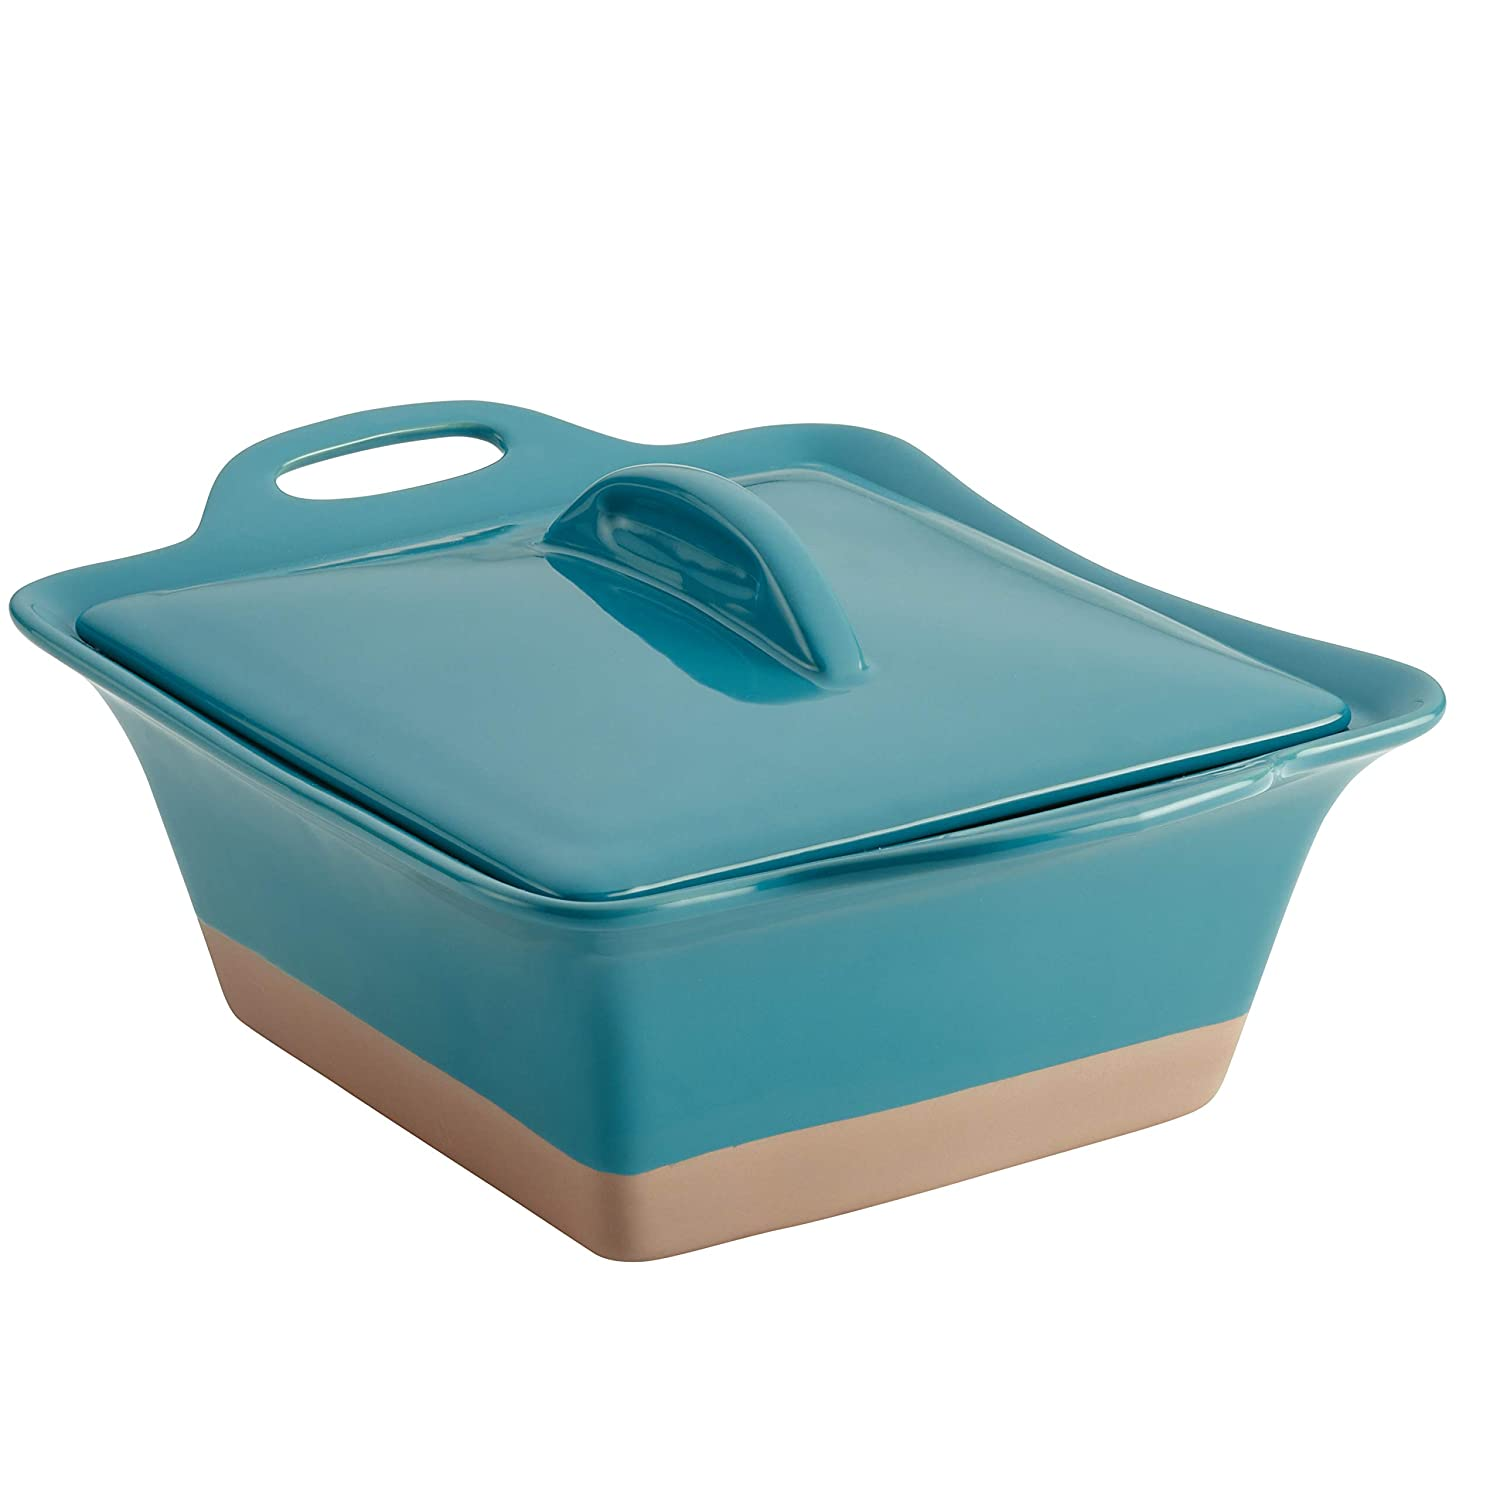 Rachael Ray 47148 2.5-Qt. Square Stoneware Casserole, Turquoise